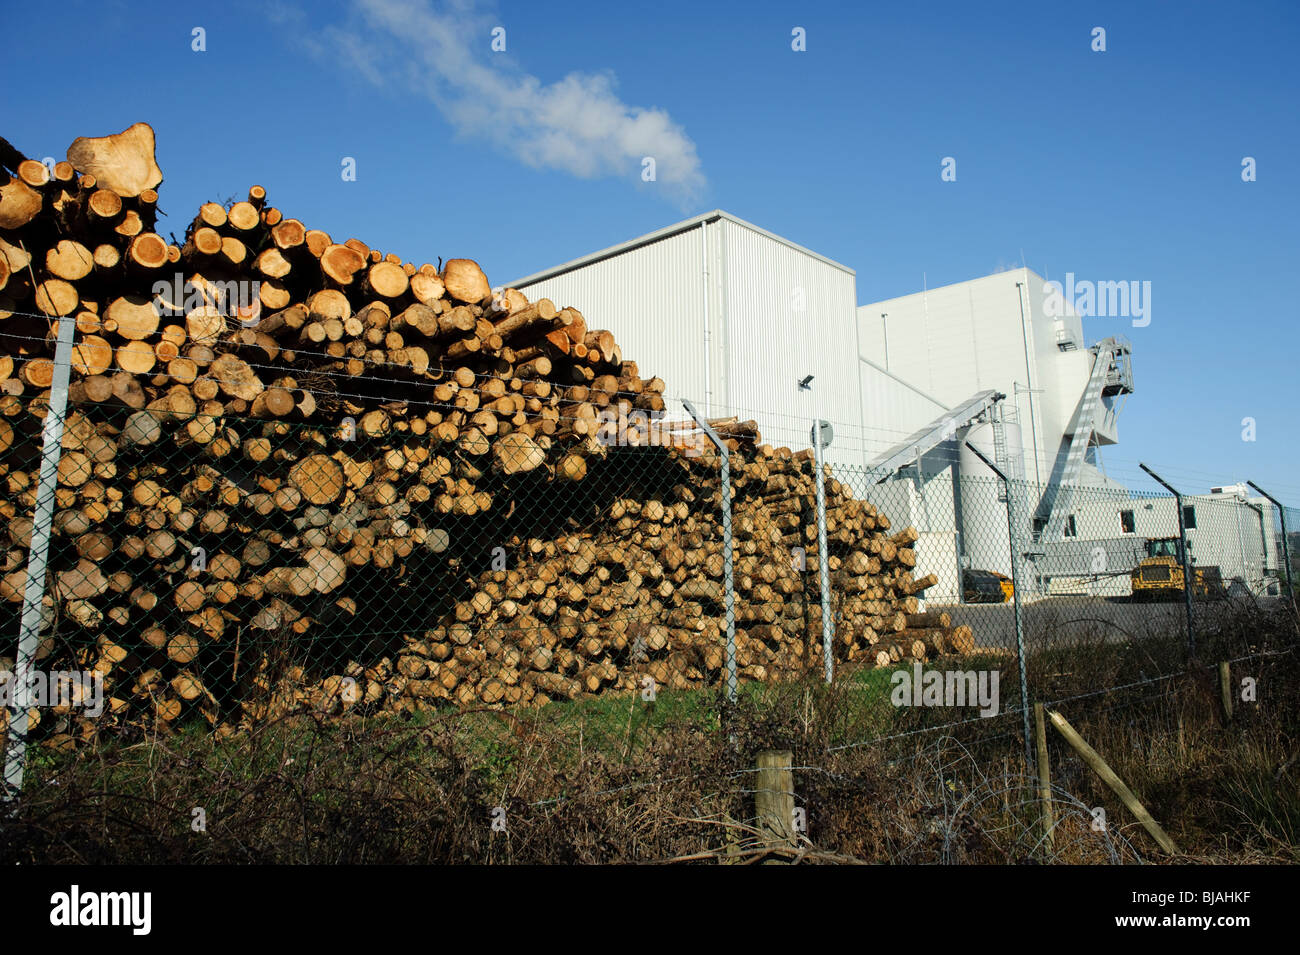 Fuel stocked up outside the western wood biomass energy